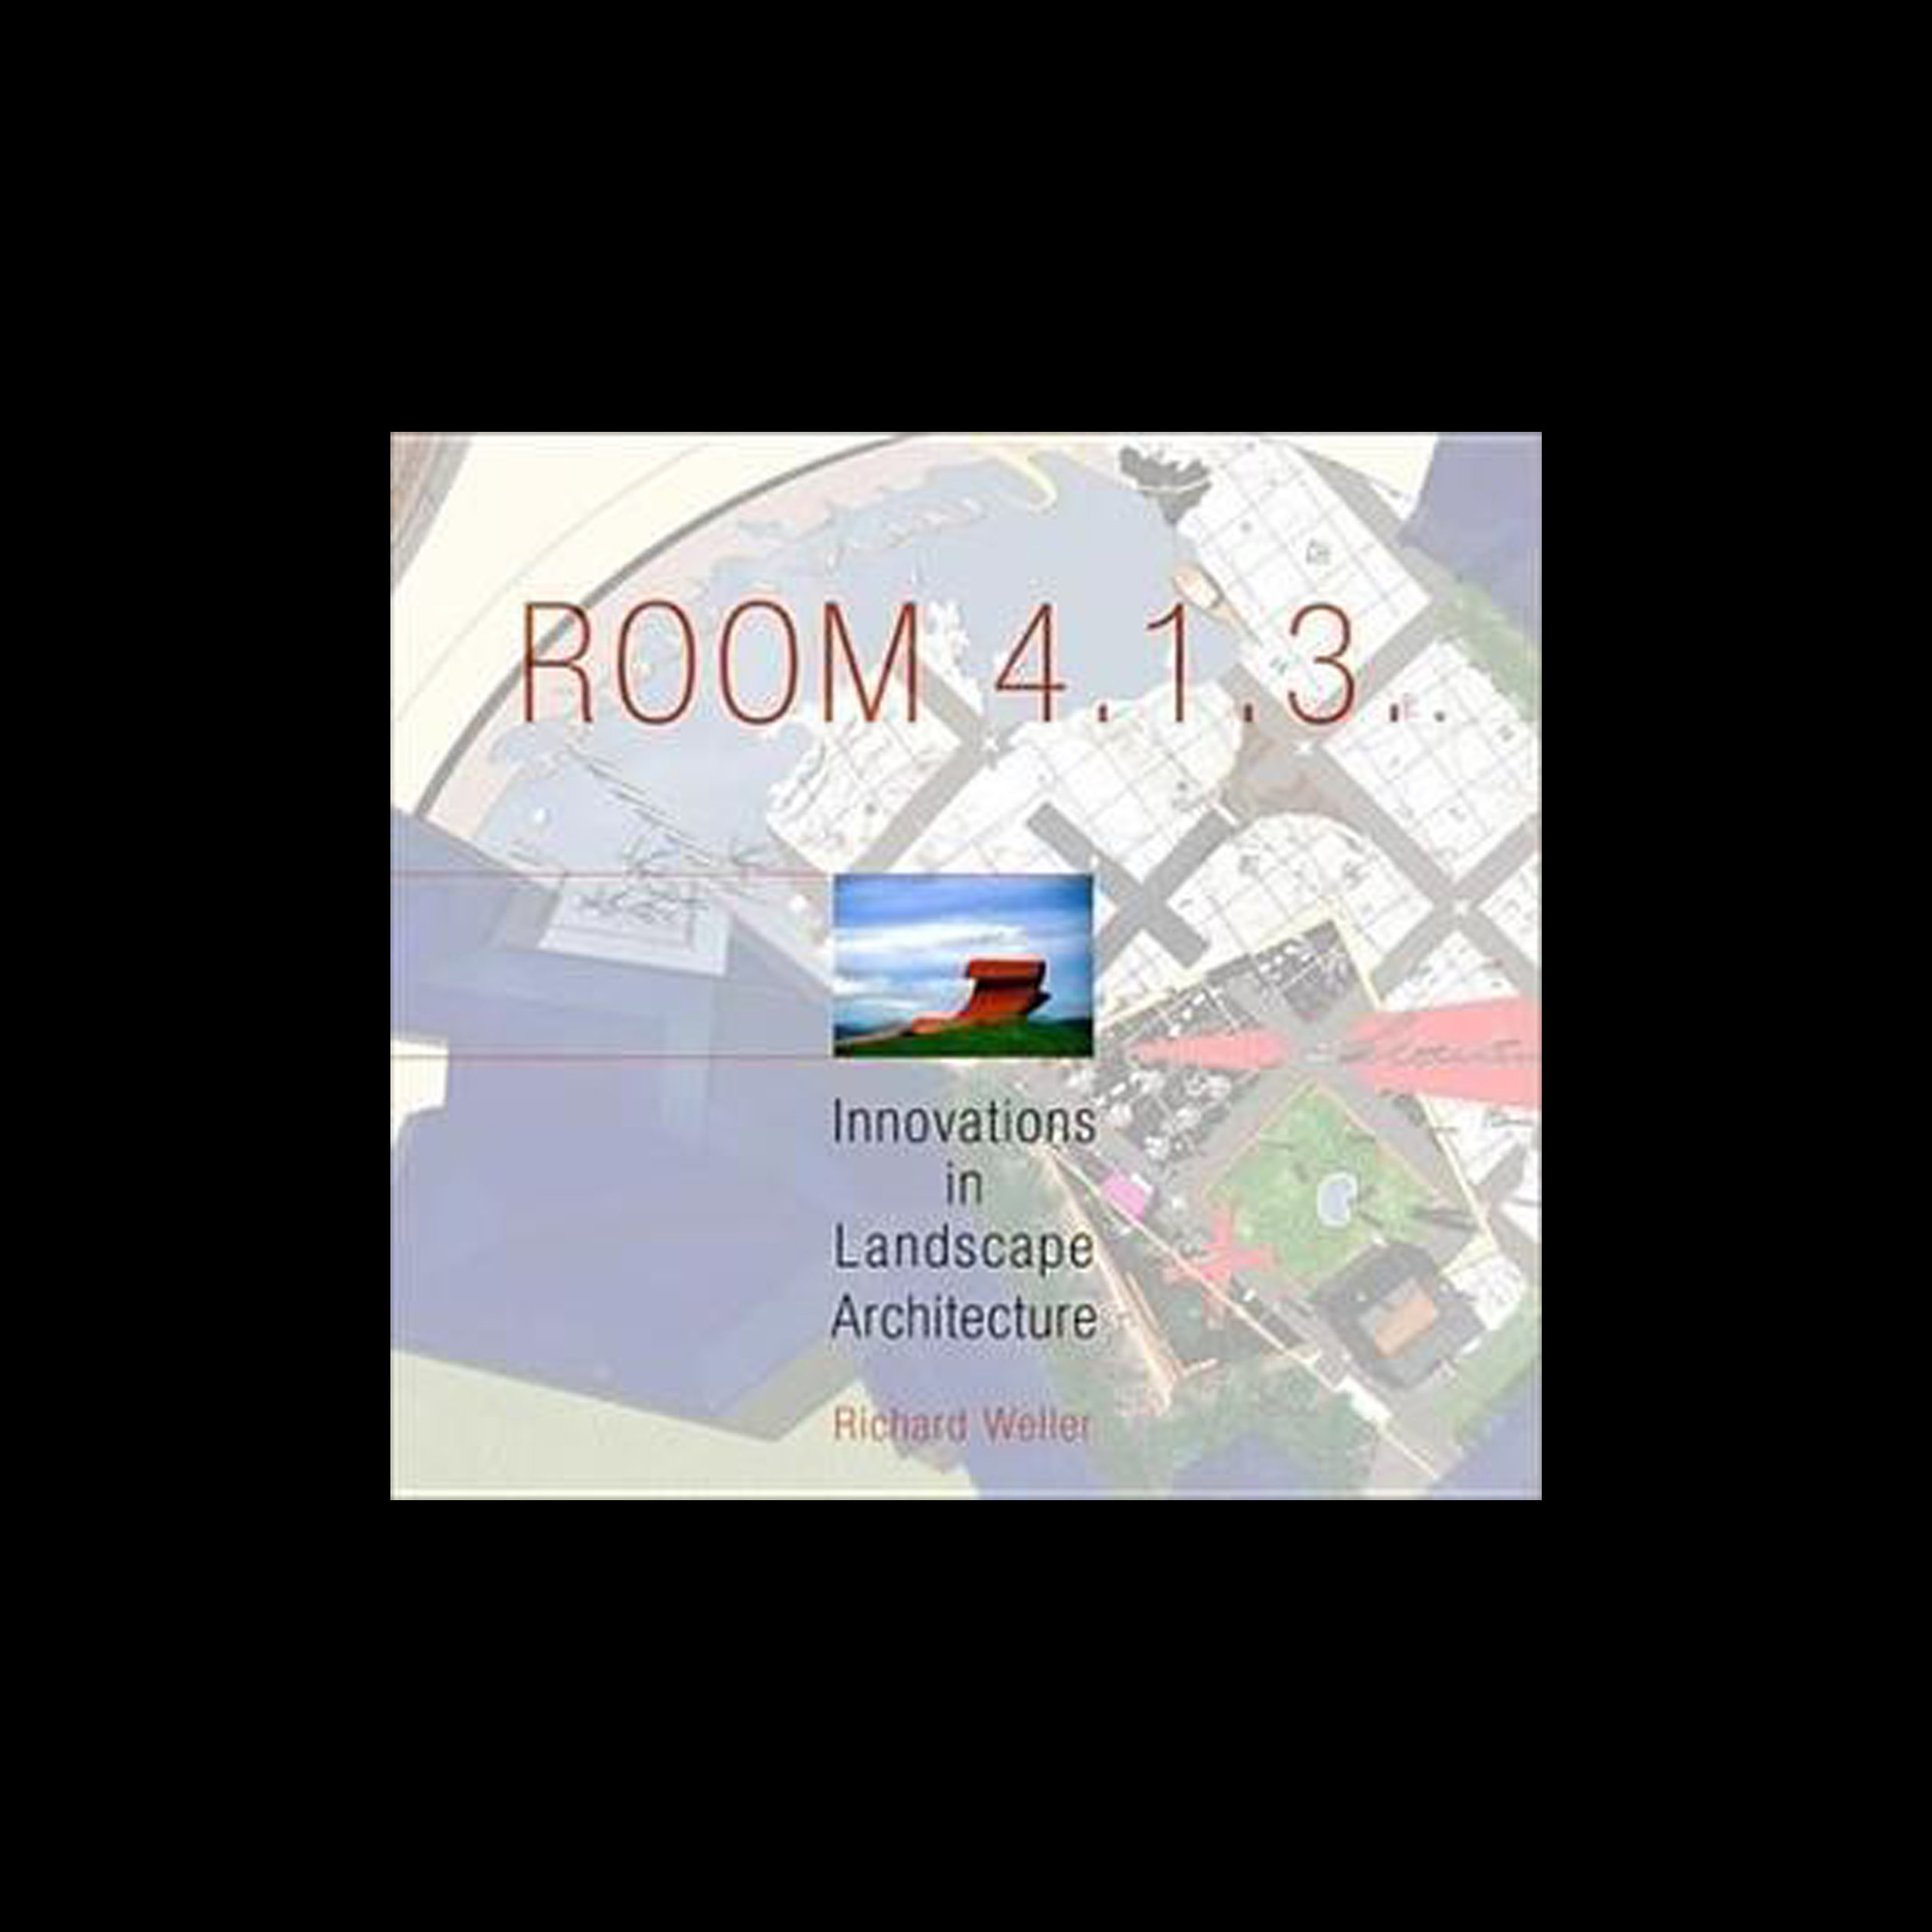 ROOM 4.1.3      Innovations in Landscape architecture. Penn Press, 2004 (In association  with Vladimir Sitta)